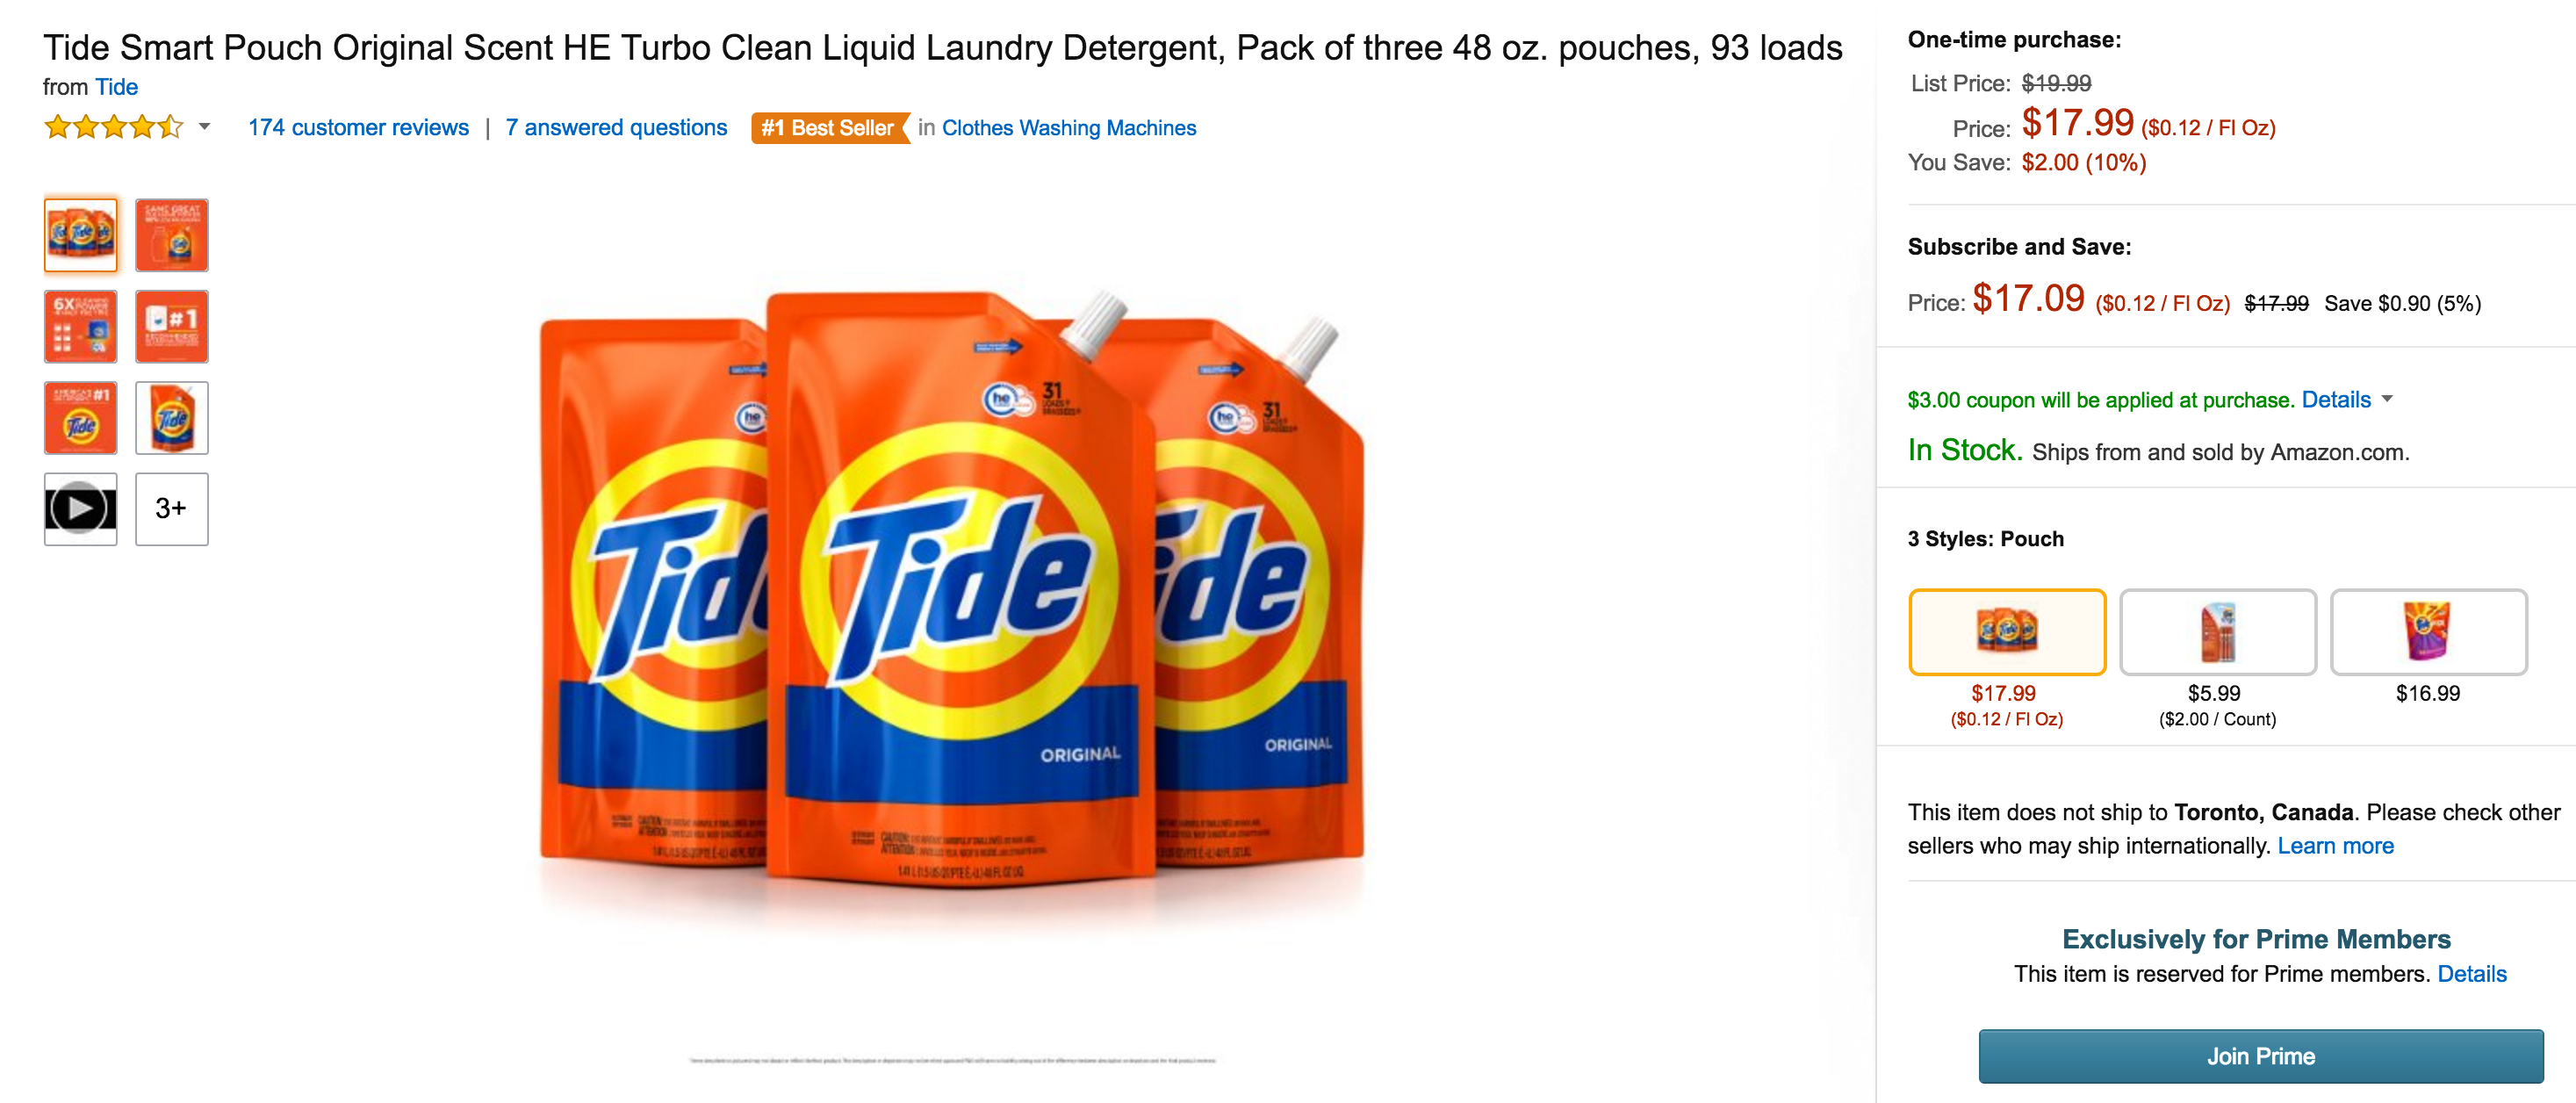 tide-smart-pouch-original-scent-he-turbo-clean-liquid-laundry-detergent-4